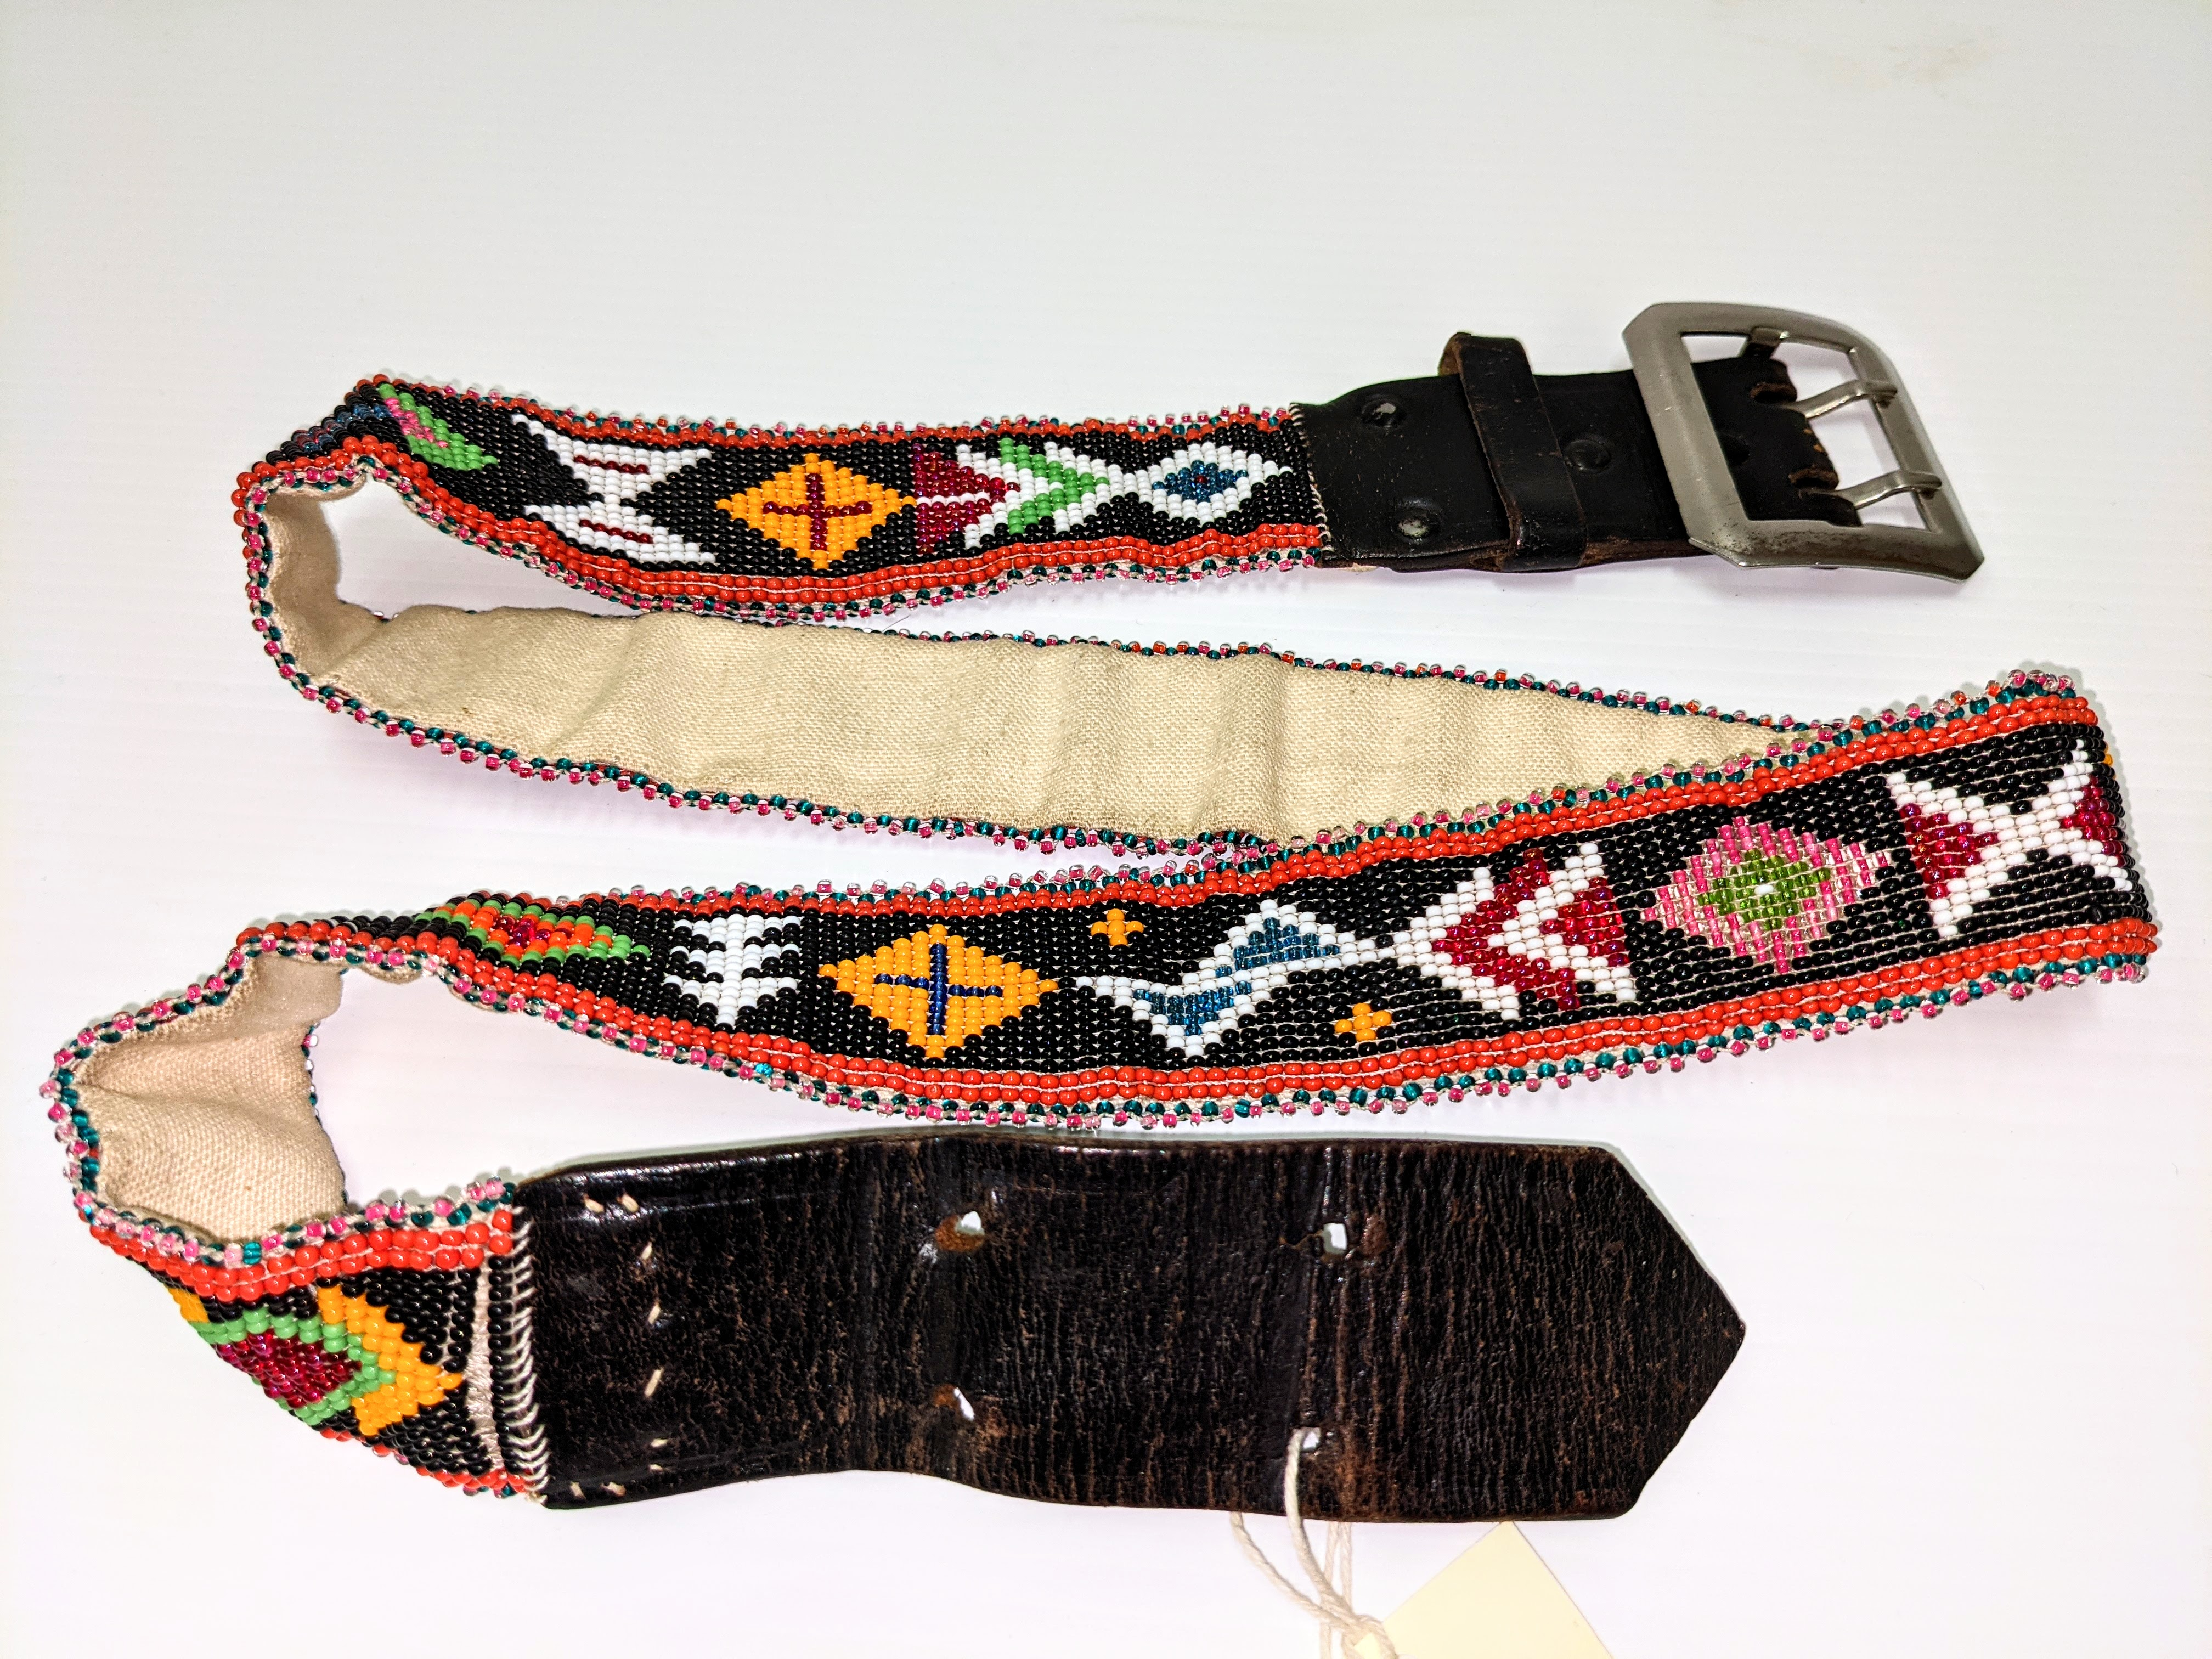 Although we do not have information on the artisan or the age of this beautiful artifact, the composition of the piece make it very interesting. First you will notice the incredibly uniform and intricate beadwork - typical of many indigenous artists. Upon further inspection you can see that the belt itself is not made of leather but rather canvas. This was likely done for ease of beading - though it is possible that the artist recycled a broken belt using the hardware and leather of either end. Recycling and reusing everything from building materials, to beads has long been practiced in Fort Vermilion and is part of what has allowed the settlement to prosper since 1788!  24/05/2021 2005.44.08 / Randolph, Helen